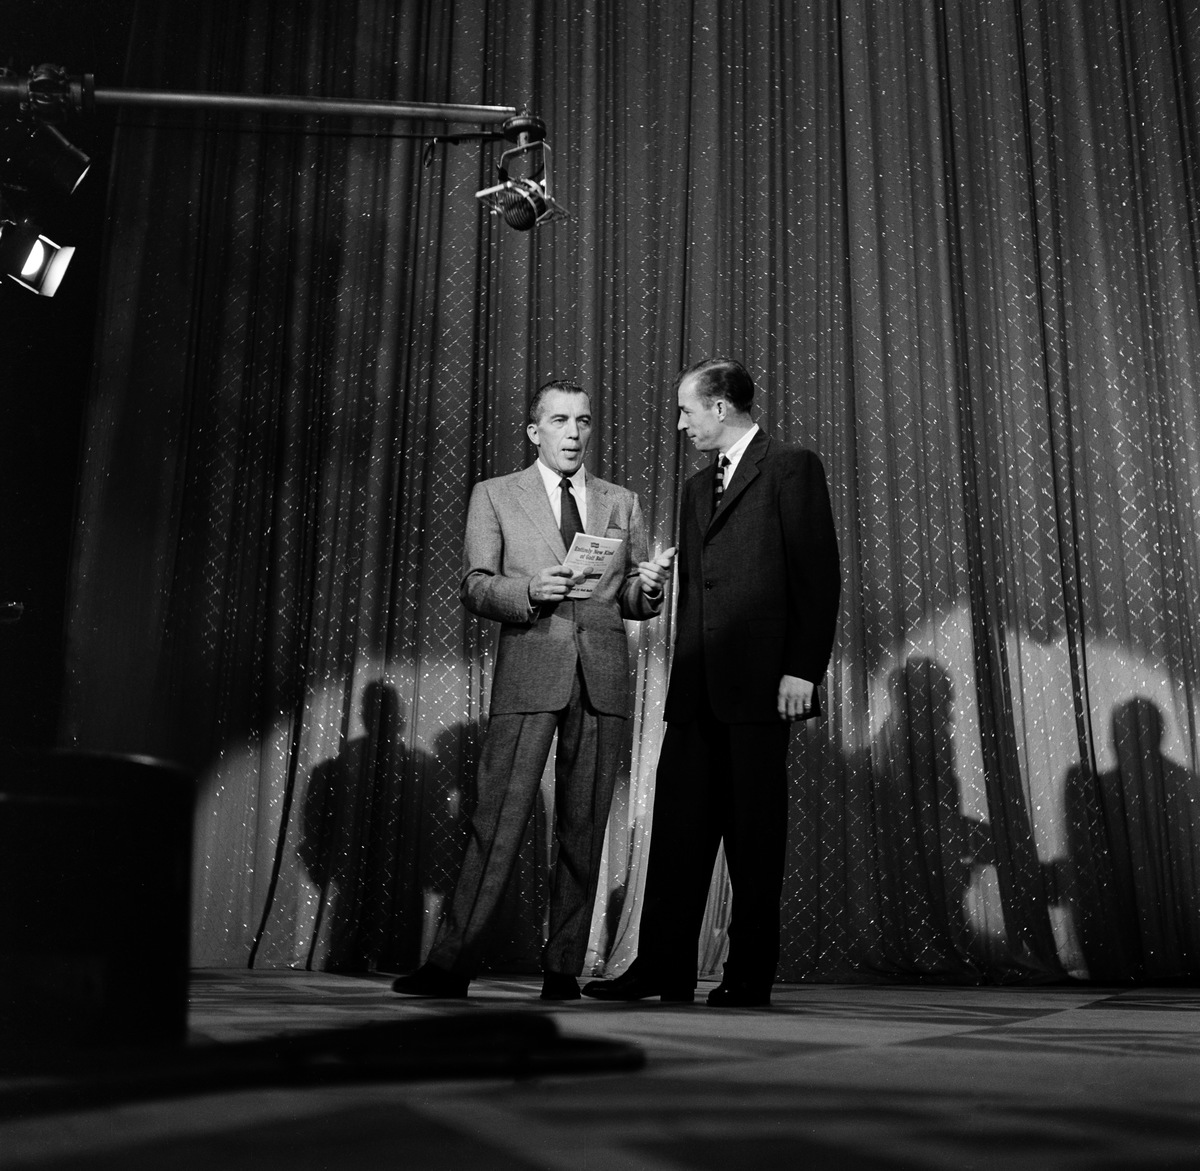 Toast of the Town hosted by Ed Sullivan